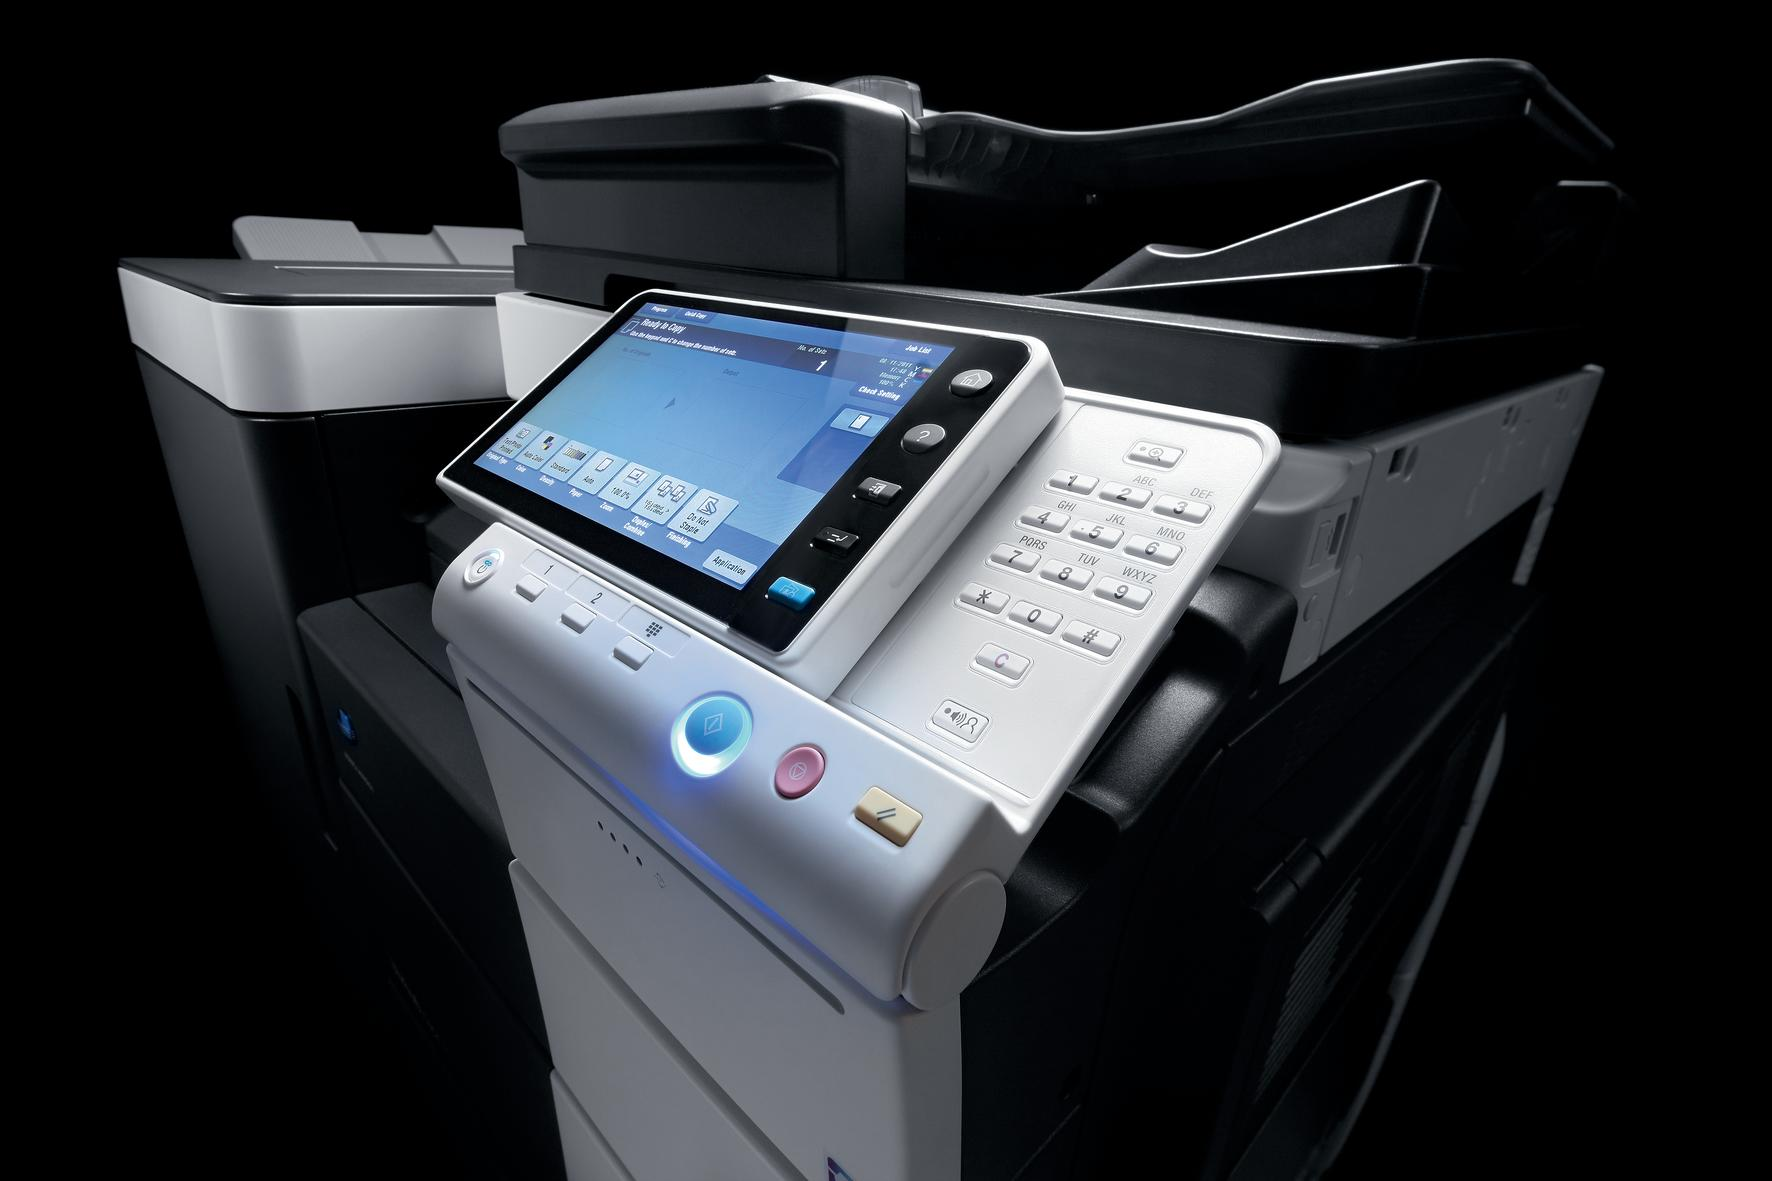 Konica Minolta Launches bizhub C754/C654 Color MFP Series